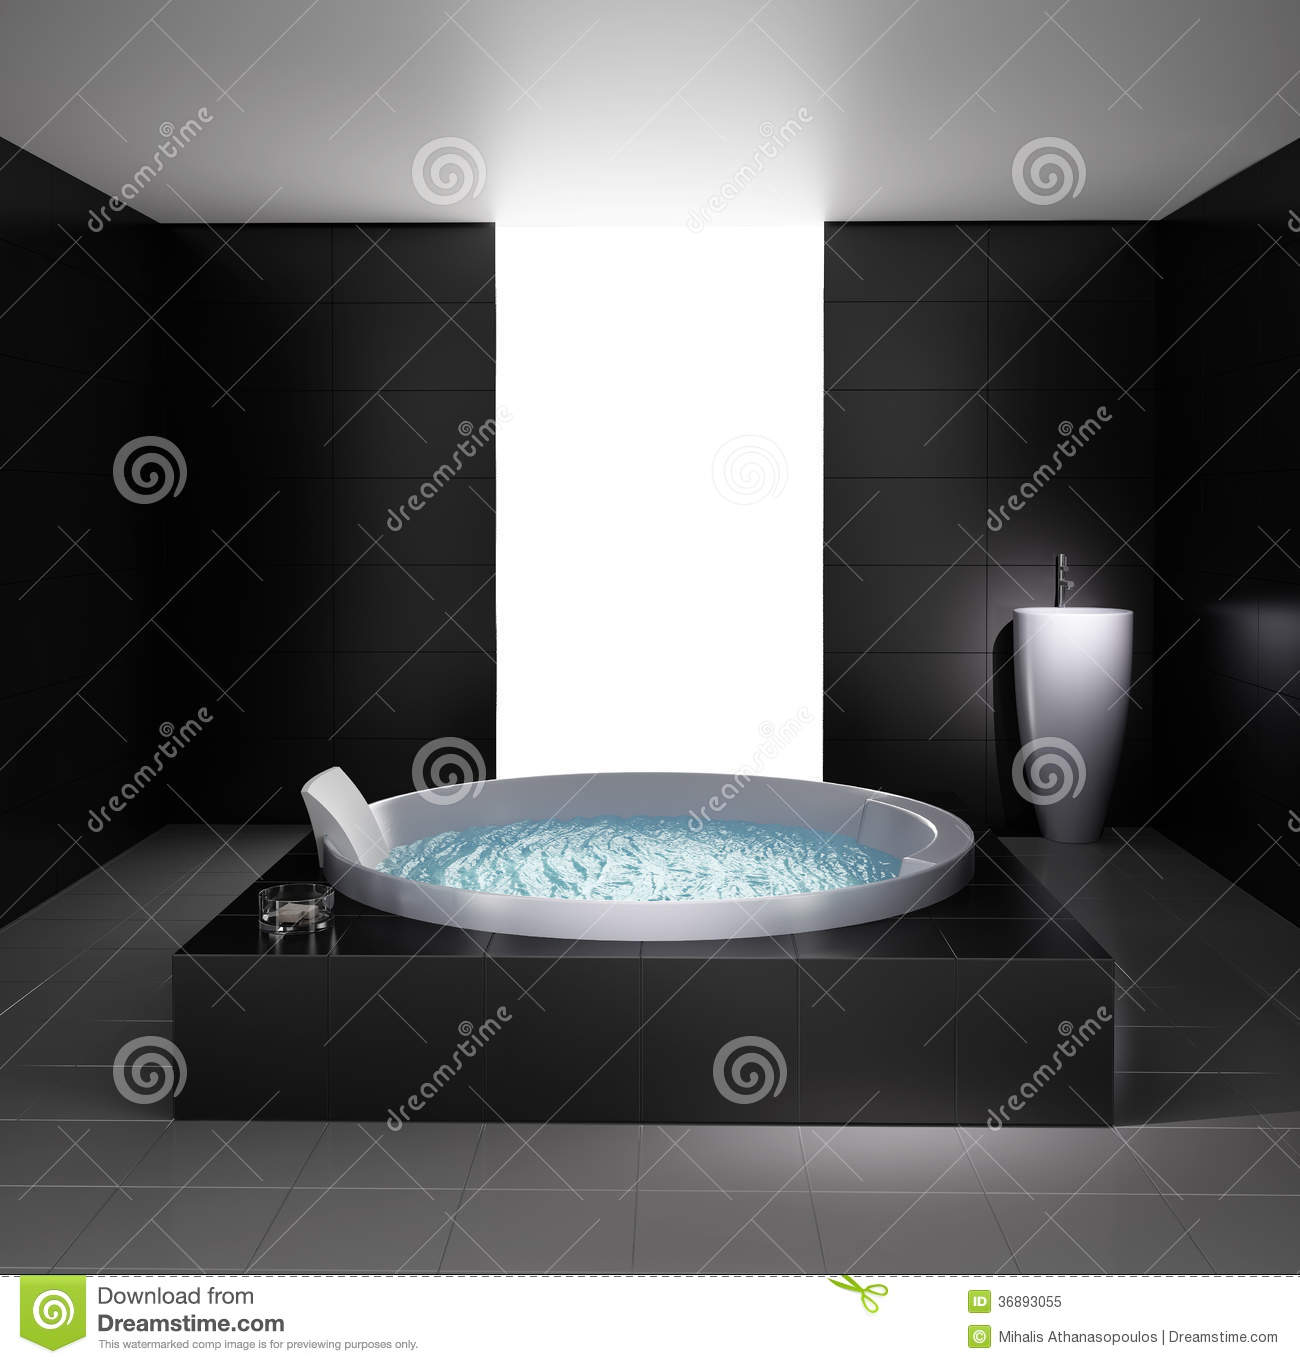 minimal bathroom with jacuzzi bathtub royalty free stock photo image